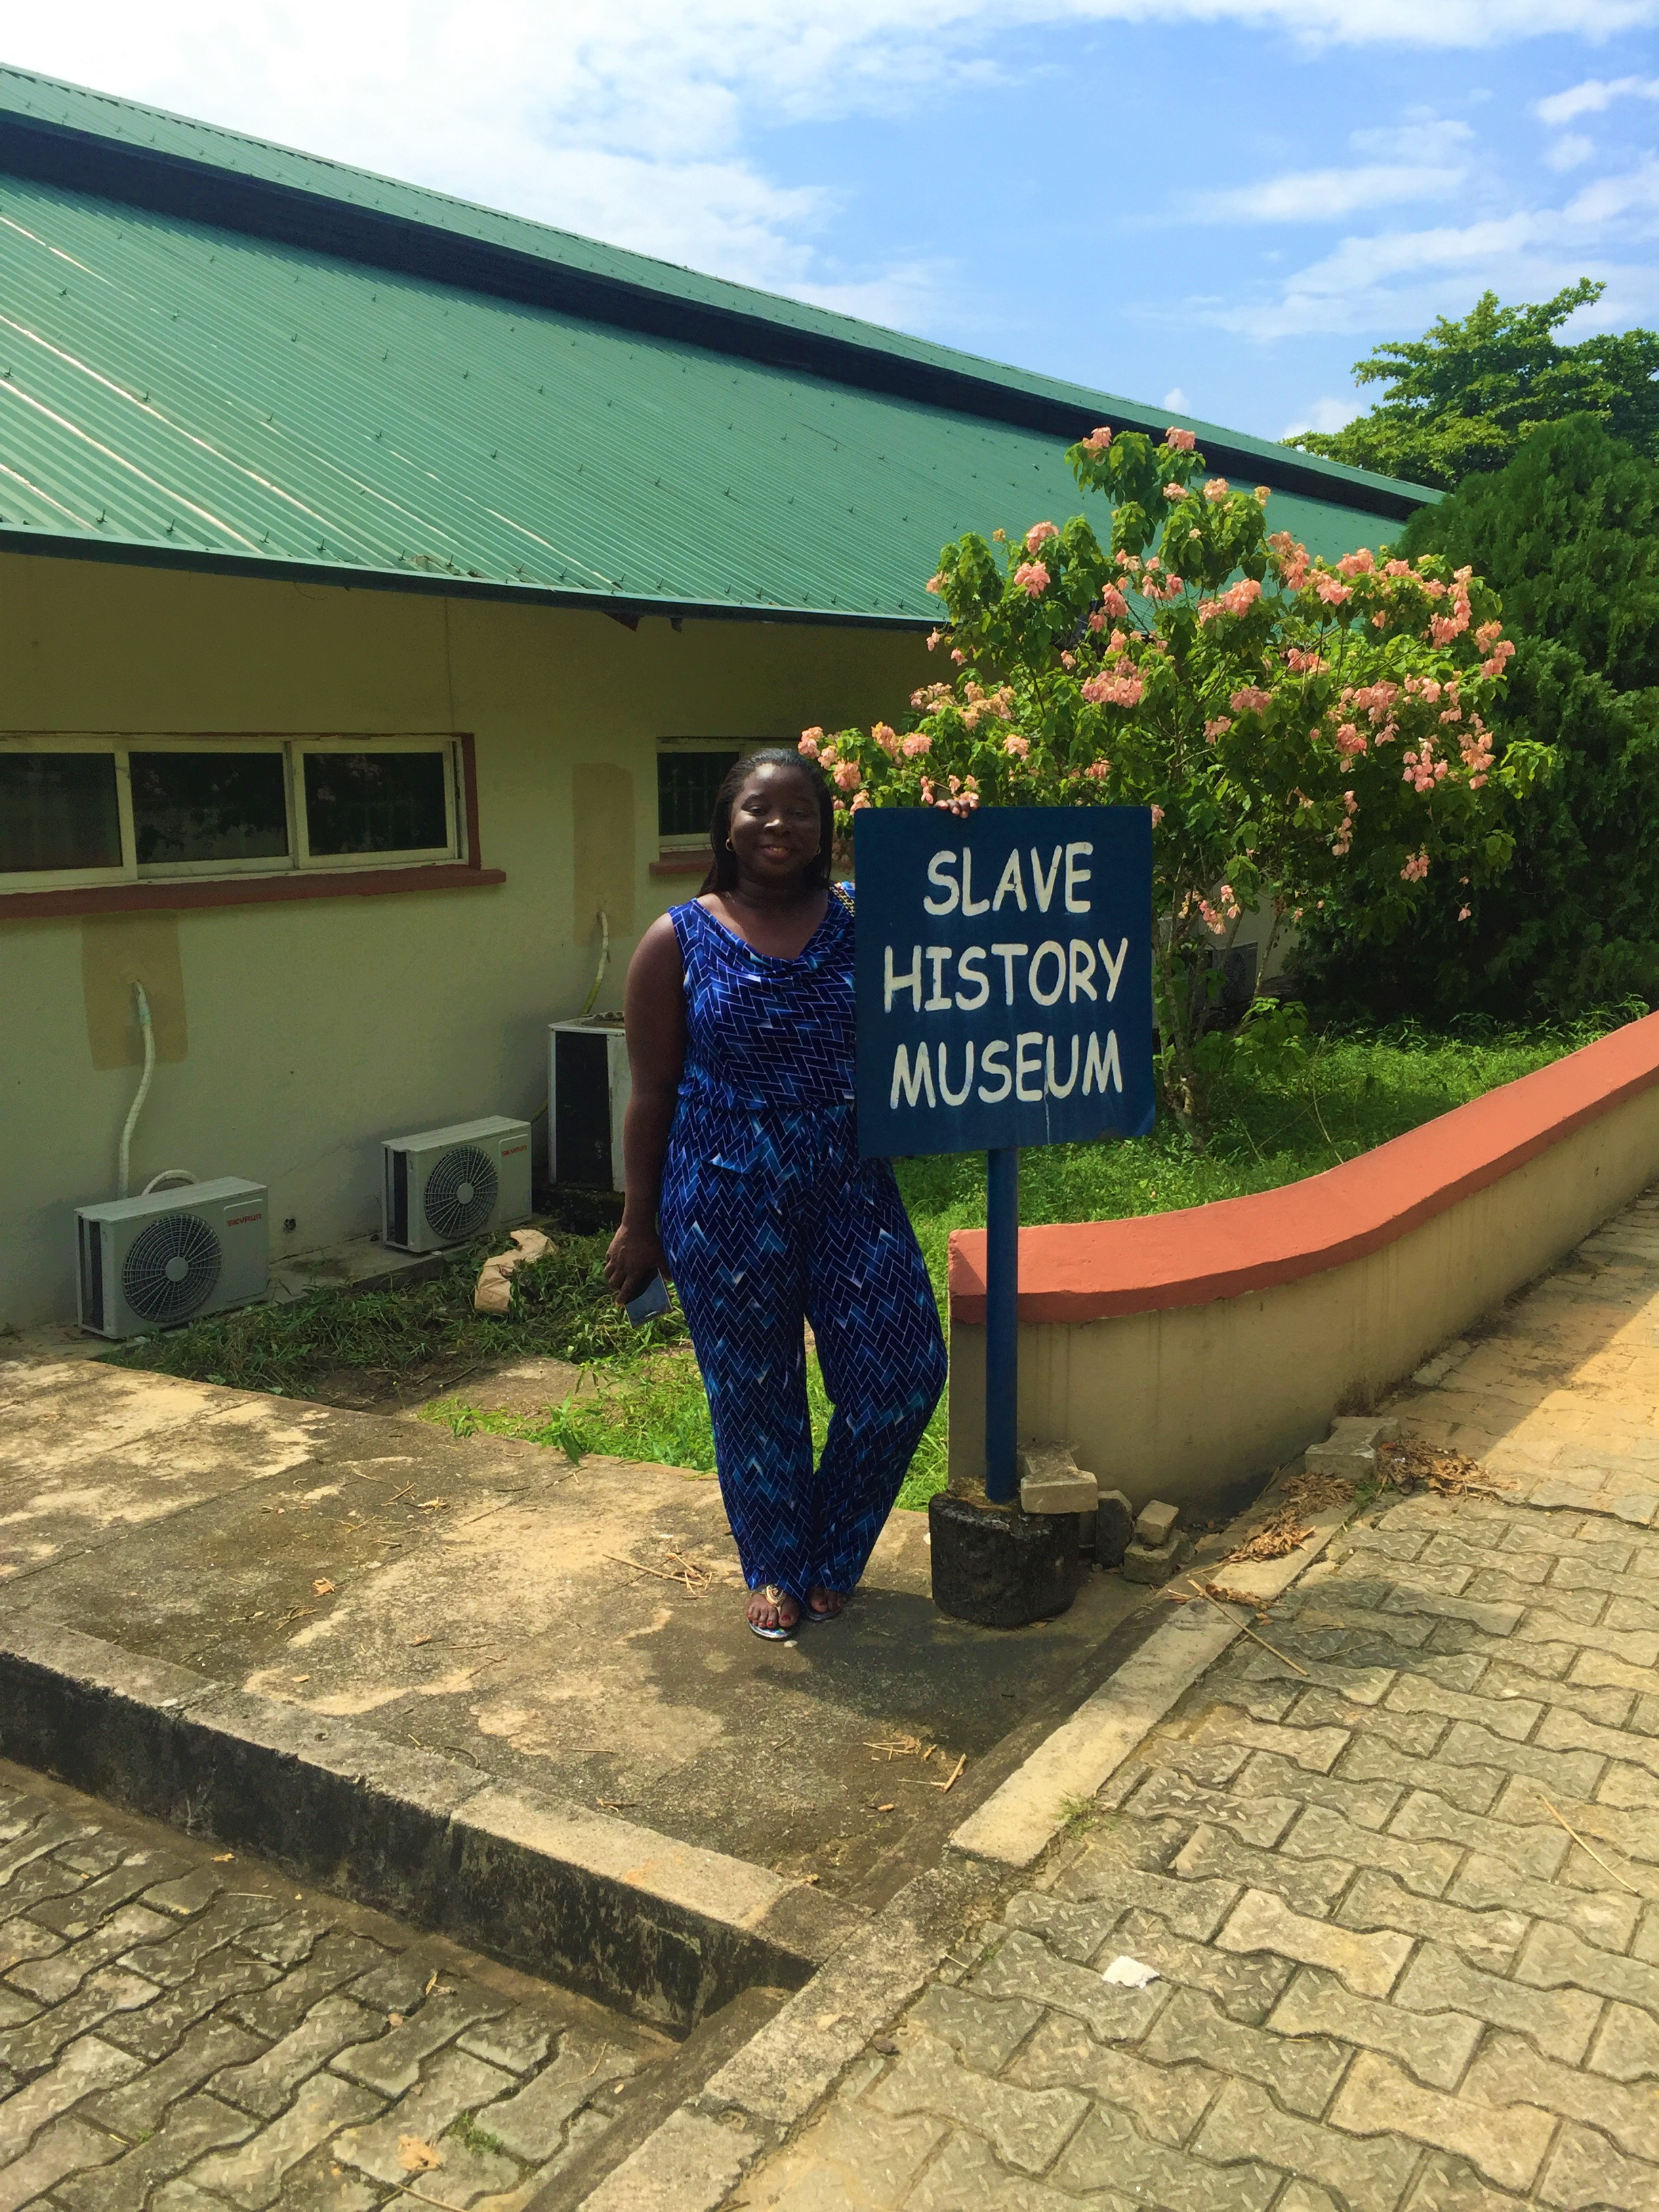 CALABAR SLAVE MUSEUM   (No pictures allowed inside)